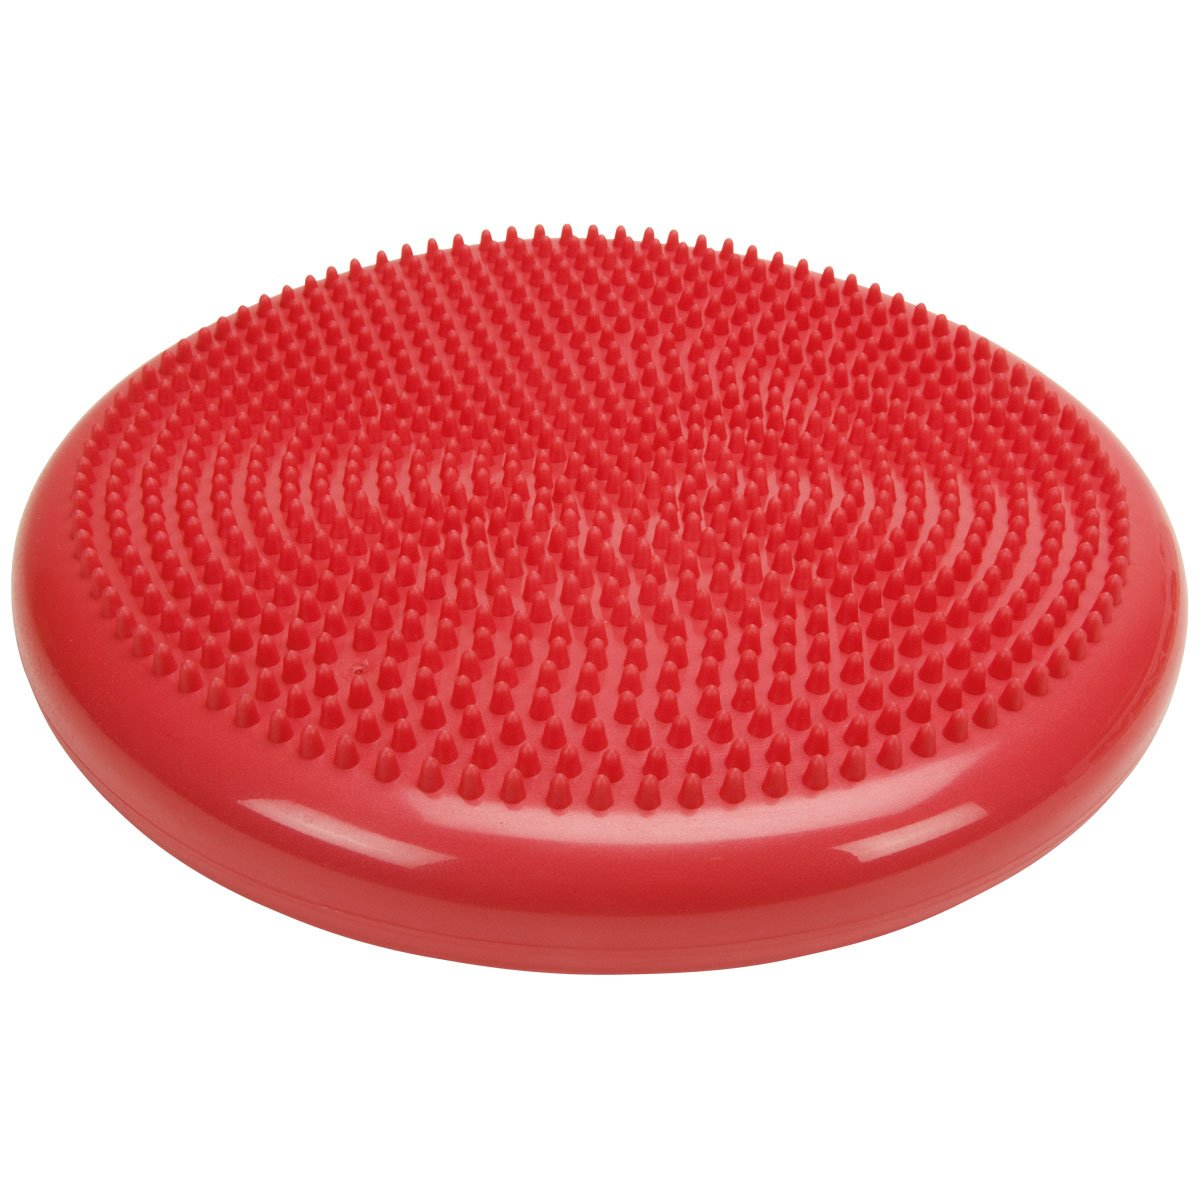 Cando 30-1870R Red Inflatable Vestibular Disc, 13-51/64 Diameter, 300 lbs Weight Capacity 13-51/64 Diameter W54265R